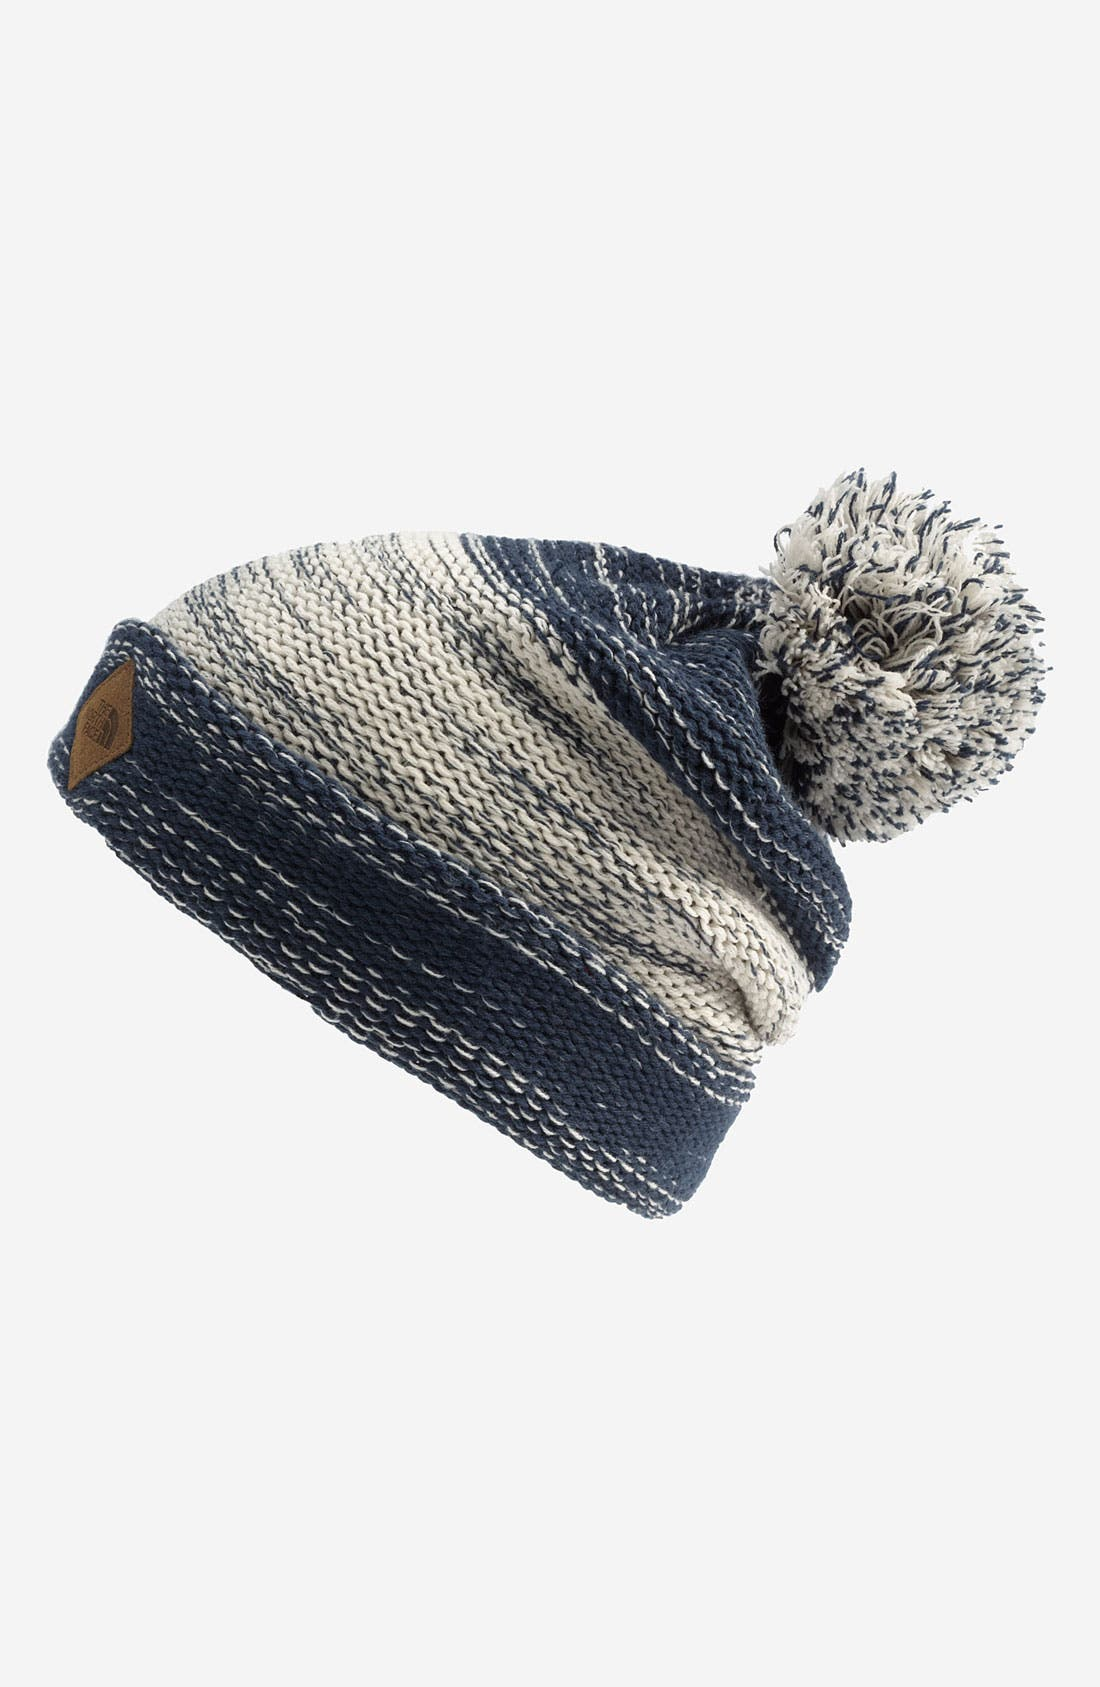 Alternate Image 1 Selected - The North Face 'Grinbriar' Knit Cap